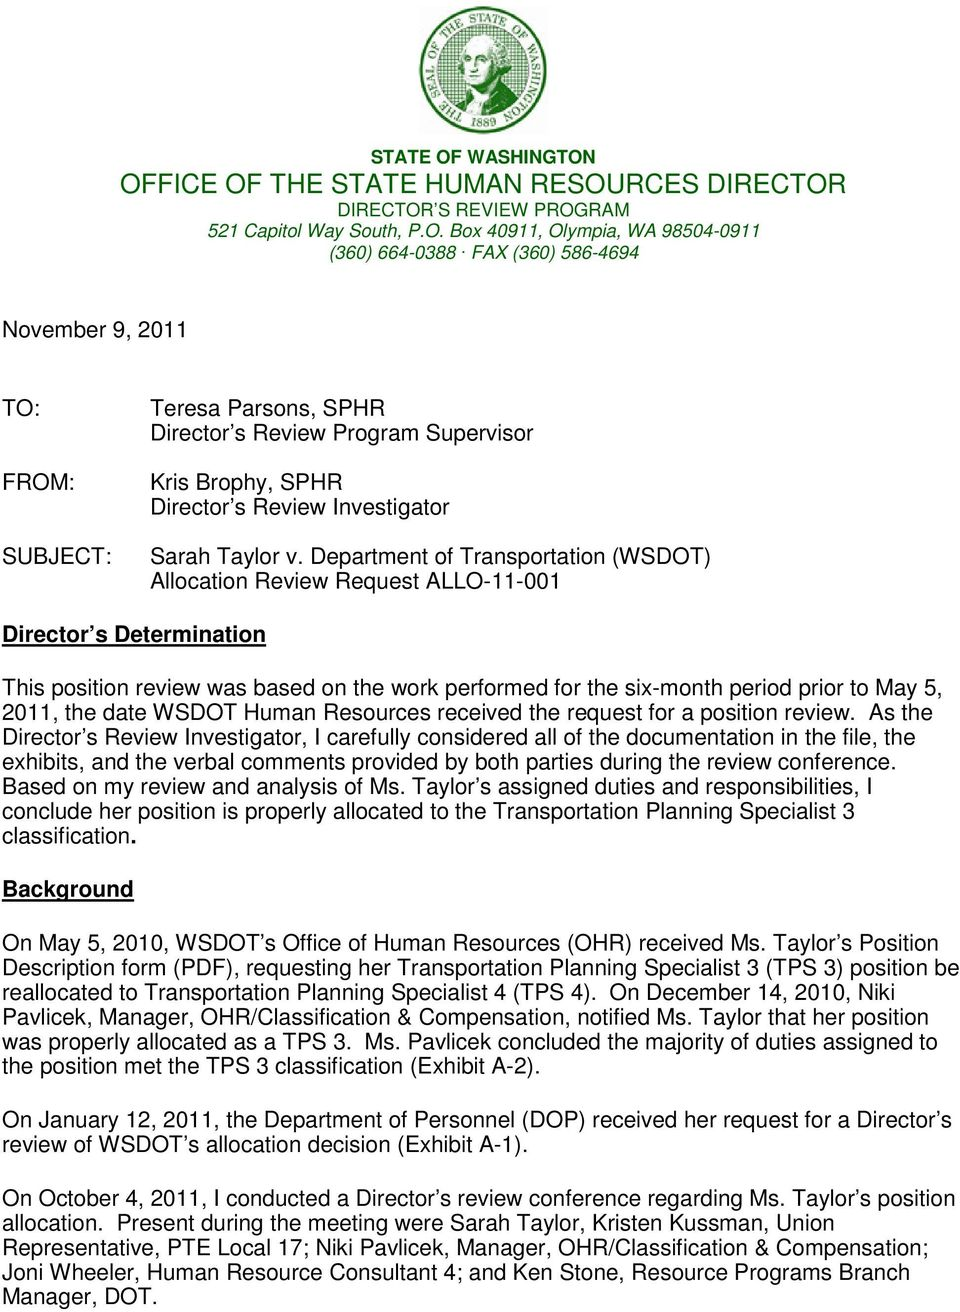 OFFICE OF THE STATE HUMAN RESOURCES DIRECTOR DIRECTOR S REVIEW PROGRAM 521 Capitol Way South, P.O. Box 40911, Olympia, WA 98504-0911 (360) 664-0388 FAX (360) 586-4694 November 9, 2011 TO: FROM: